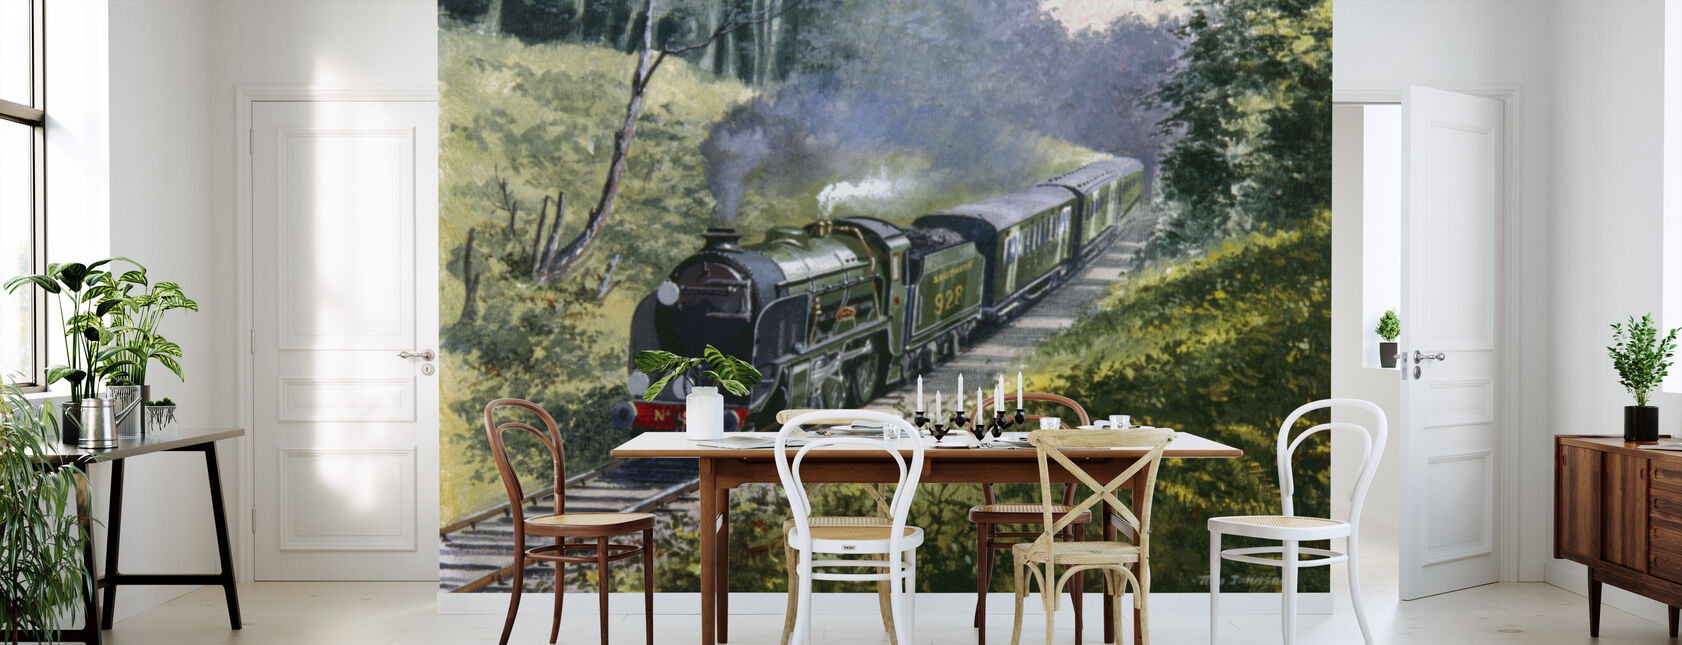 Schools Class on the Bluebell Line - Wallpaper - Kitchen